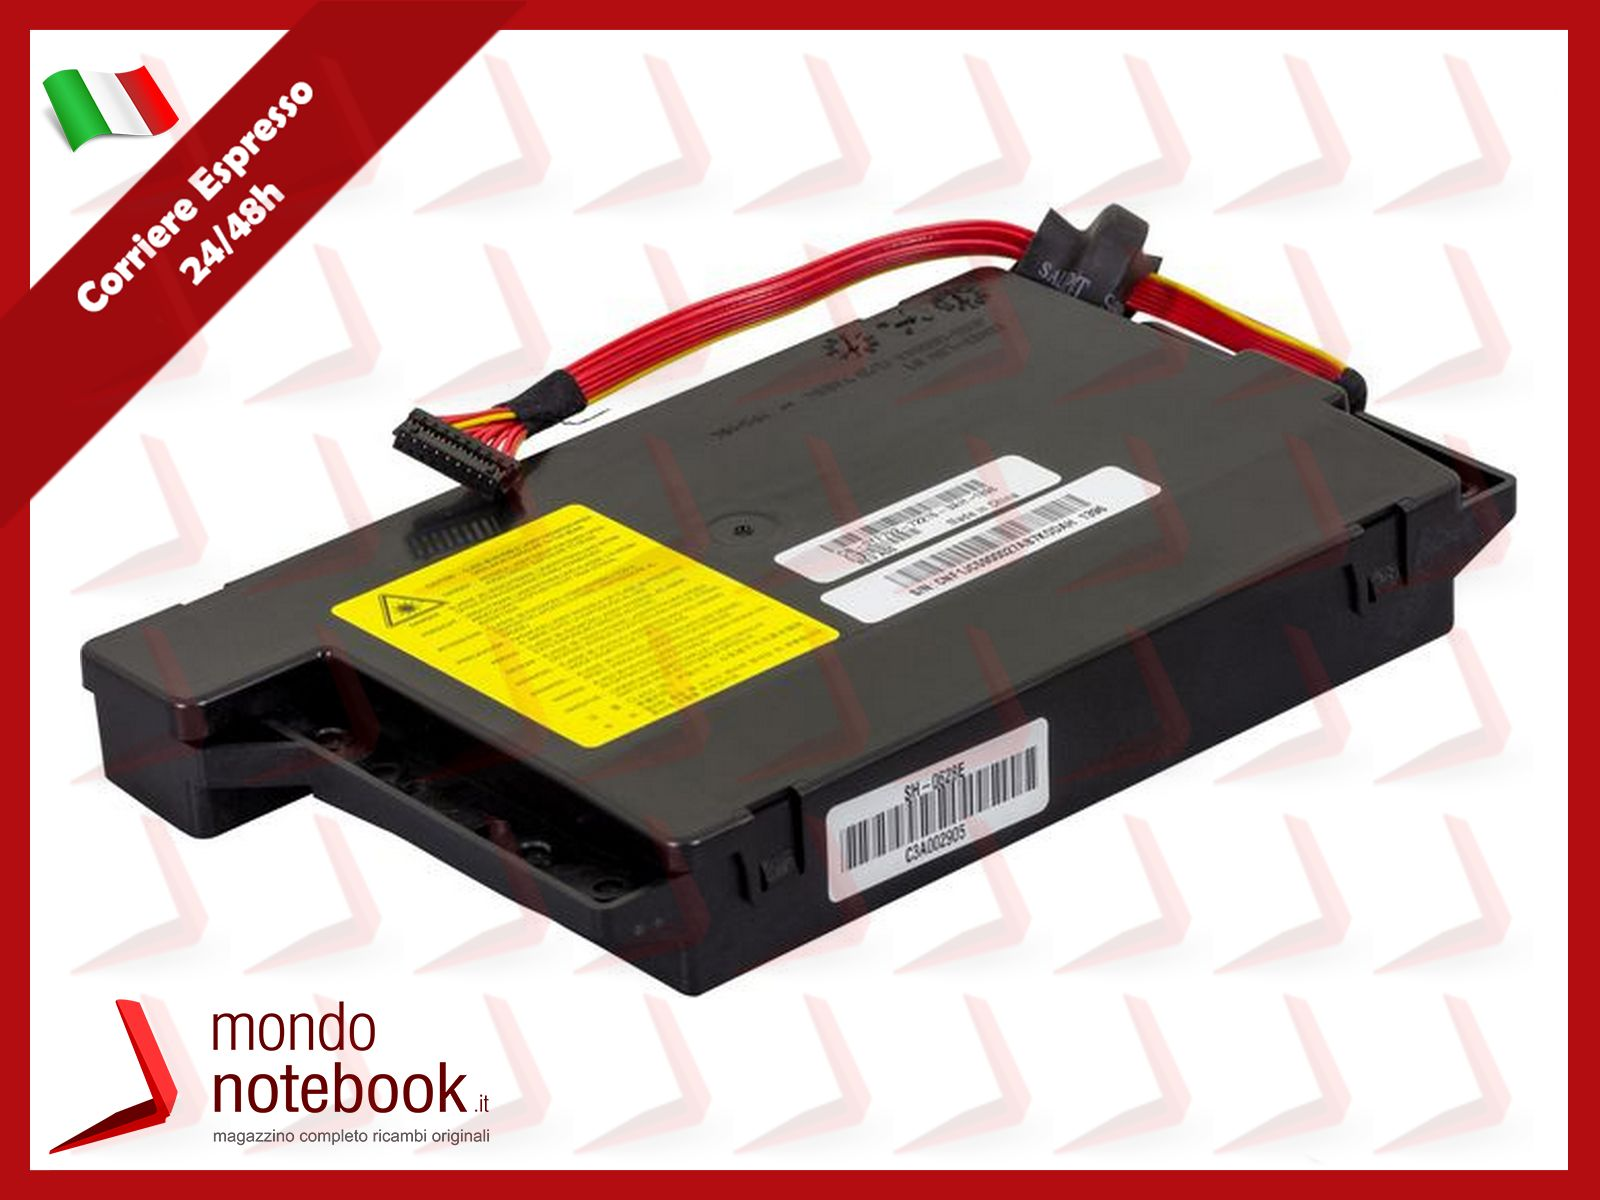 https://www.mondonotebook.it/11049/cavo-alimentazione-con-connettore-per-alimentatore-toshiba-dc-power-jack-da-63x30mm-12mt.jpg